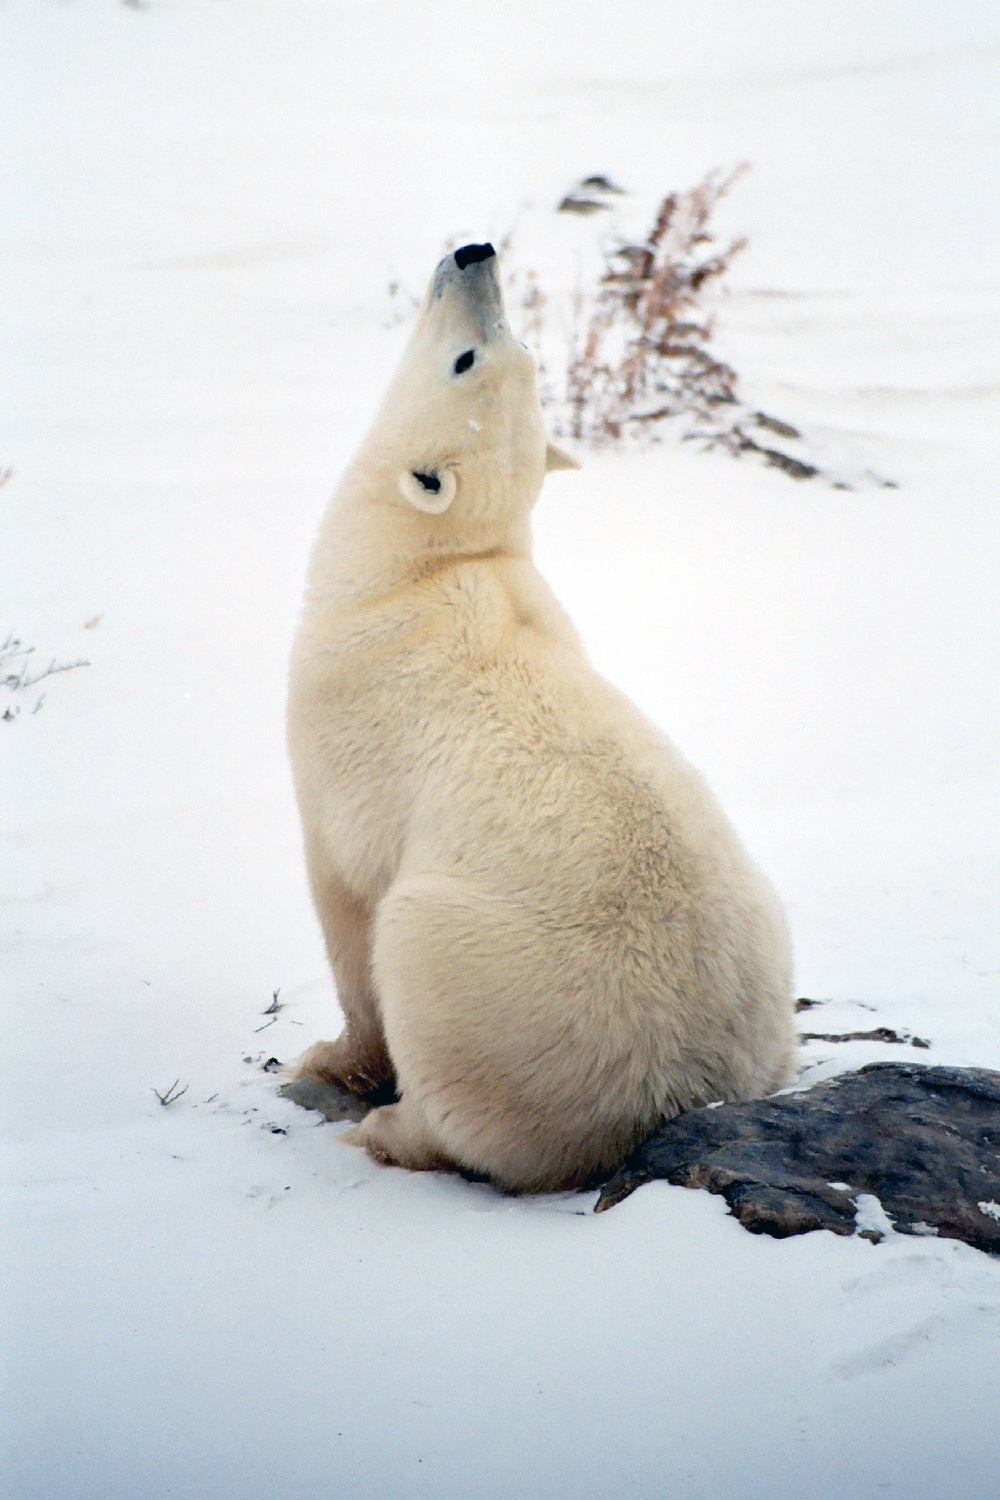 A polar bear lifting his head to smell the scent of humans nearby<div class='credit'><strong>Credit:</strong> A polar bear lifting his head to smell the scent of humans nearby</div>